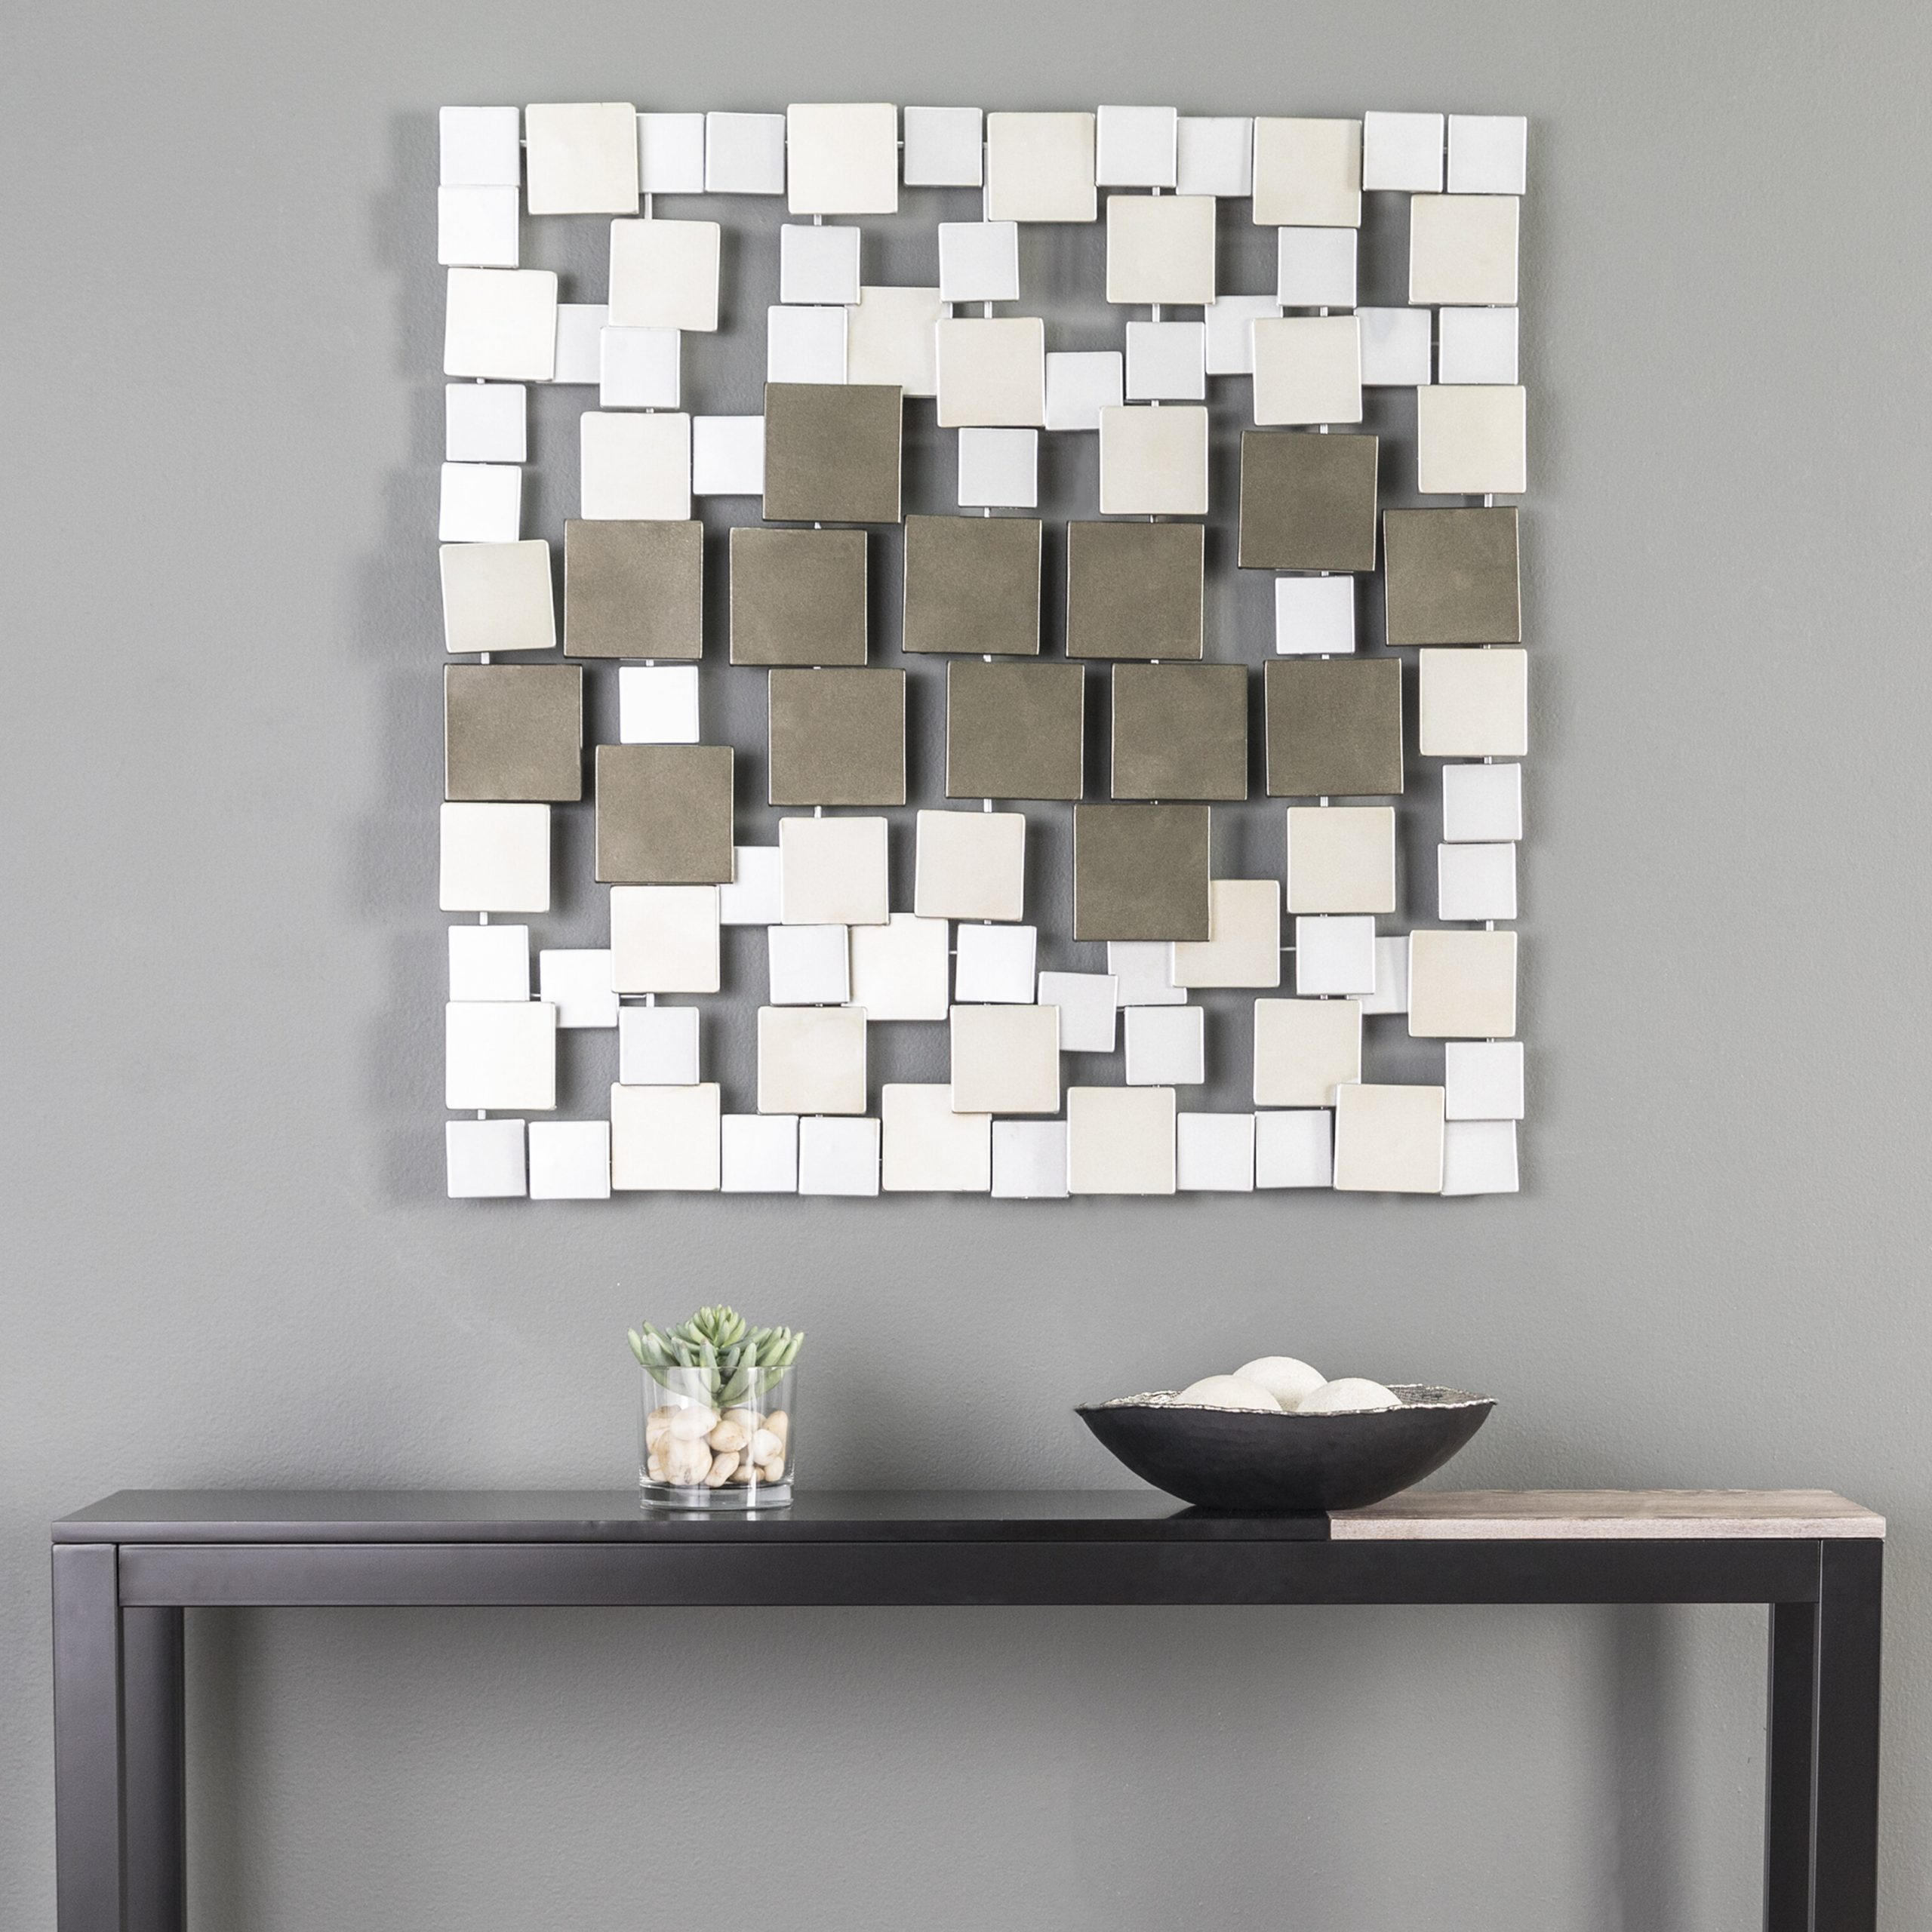 Wall Décor By Brayden Studio Pertaining To Newest Square Metal Wall Décor (View 9 of 20)